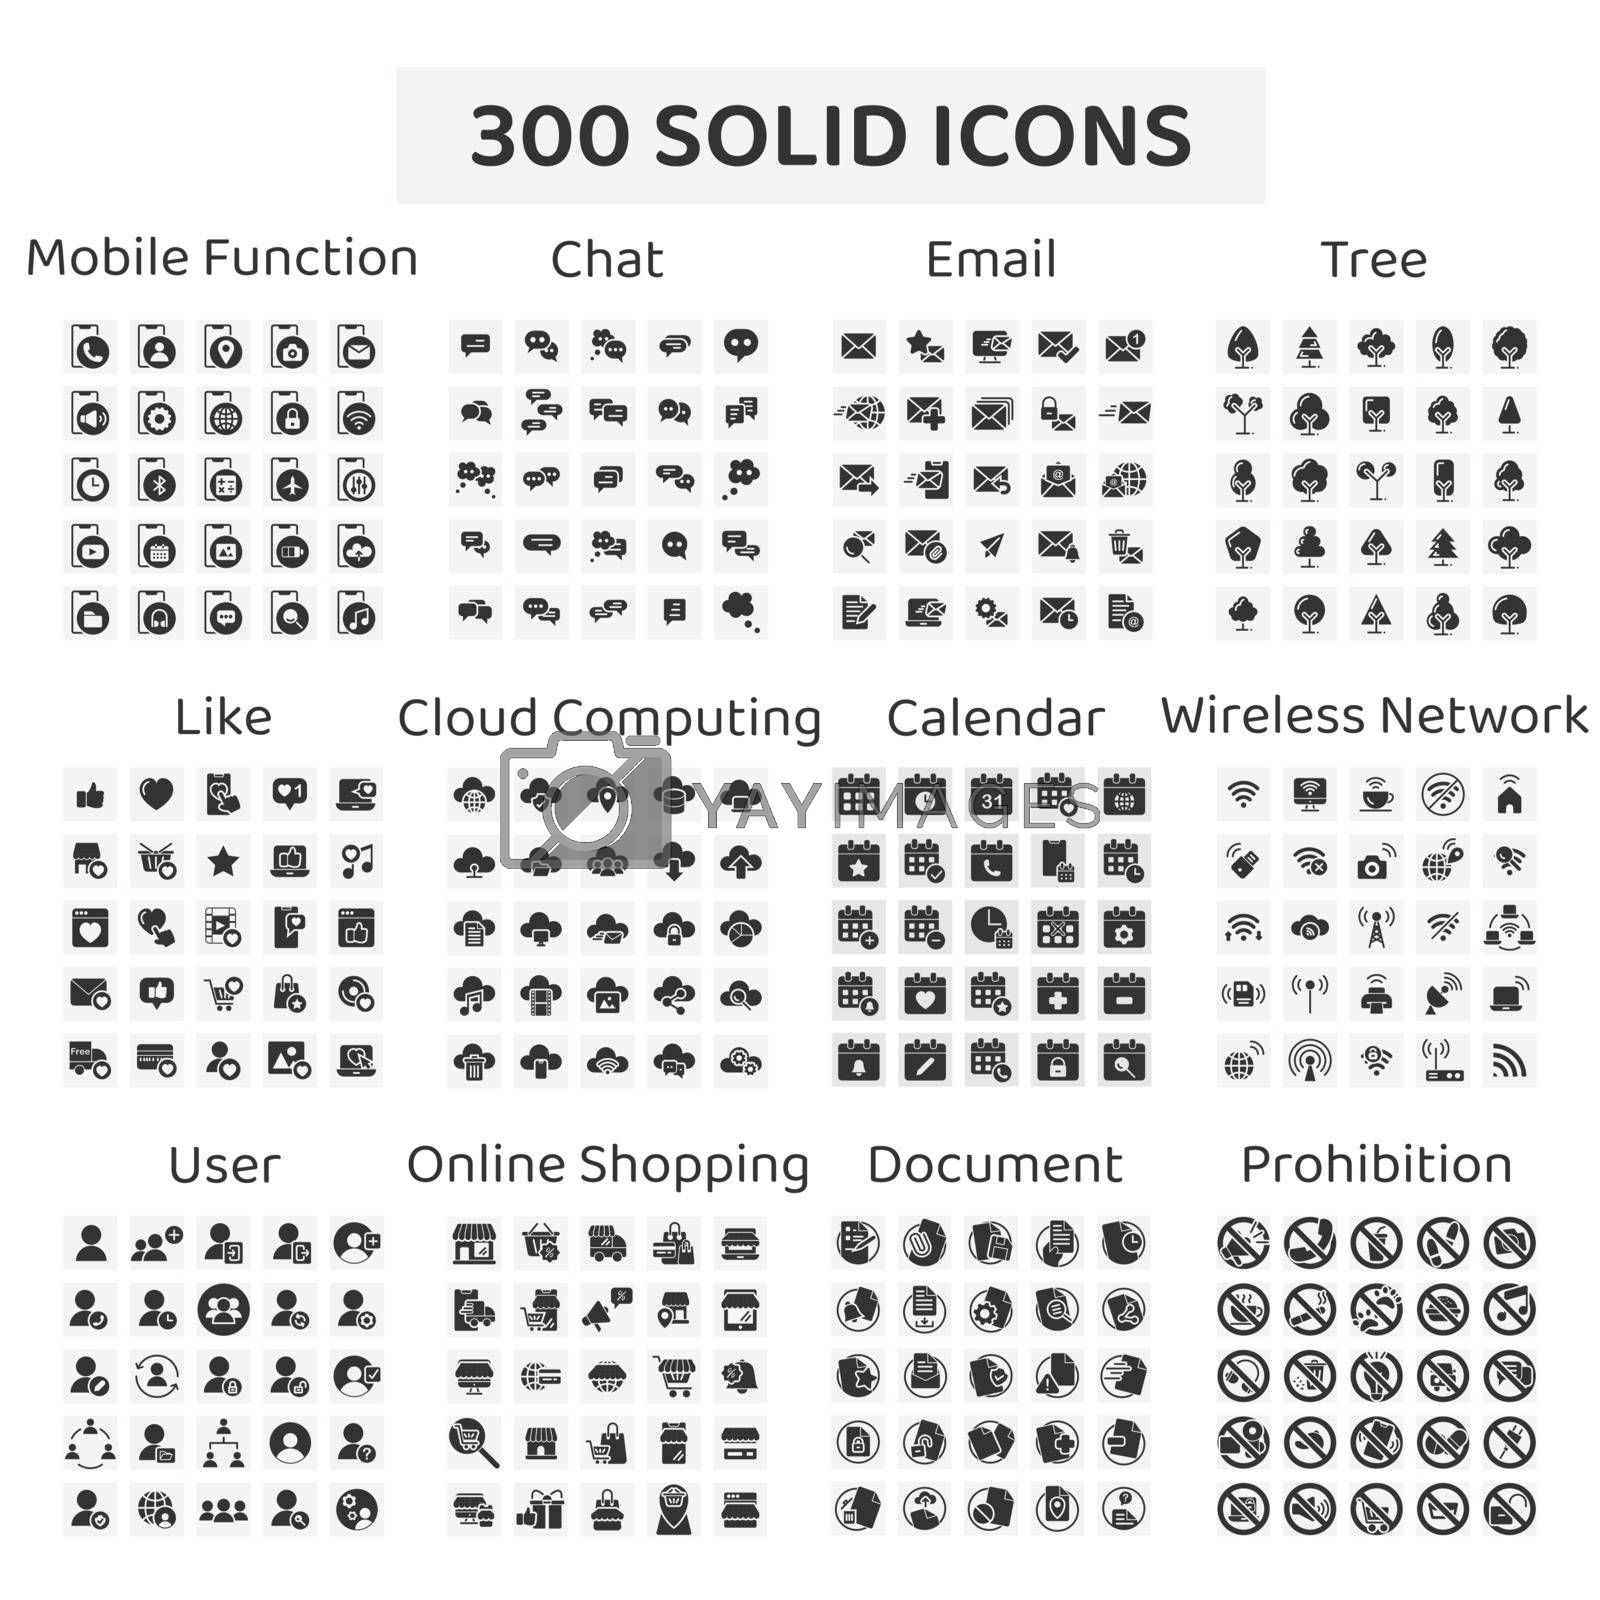 Set of 300 solid icons : mobile function ,chat ,email ,tree ,like ,cloud computing ,calendar ,wireless network ,user ,online shopping ,document ,prohibition sign.